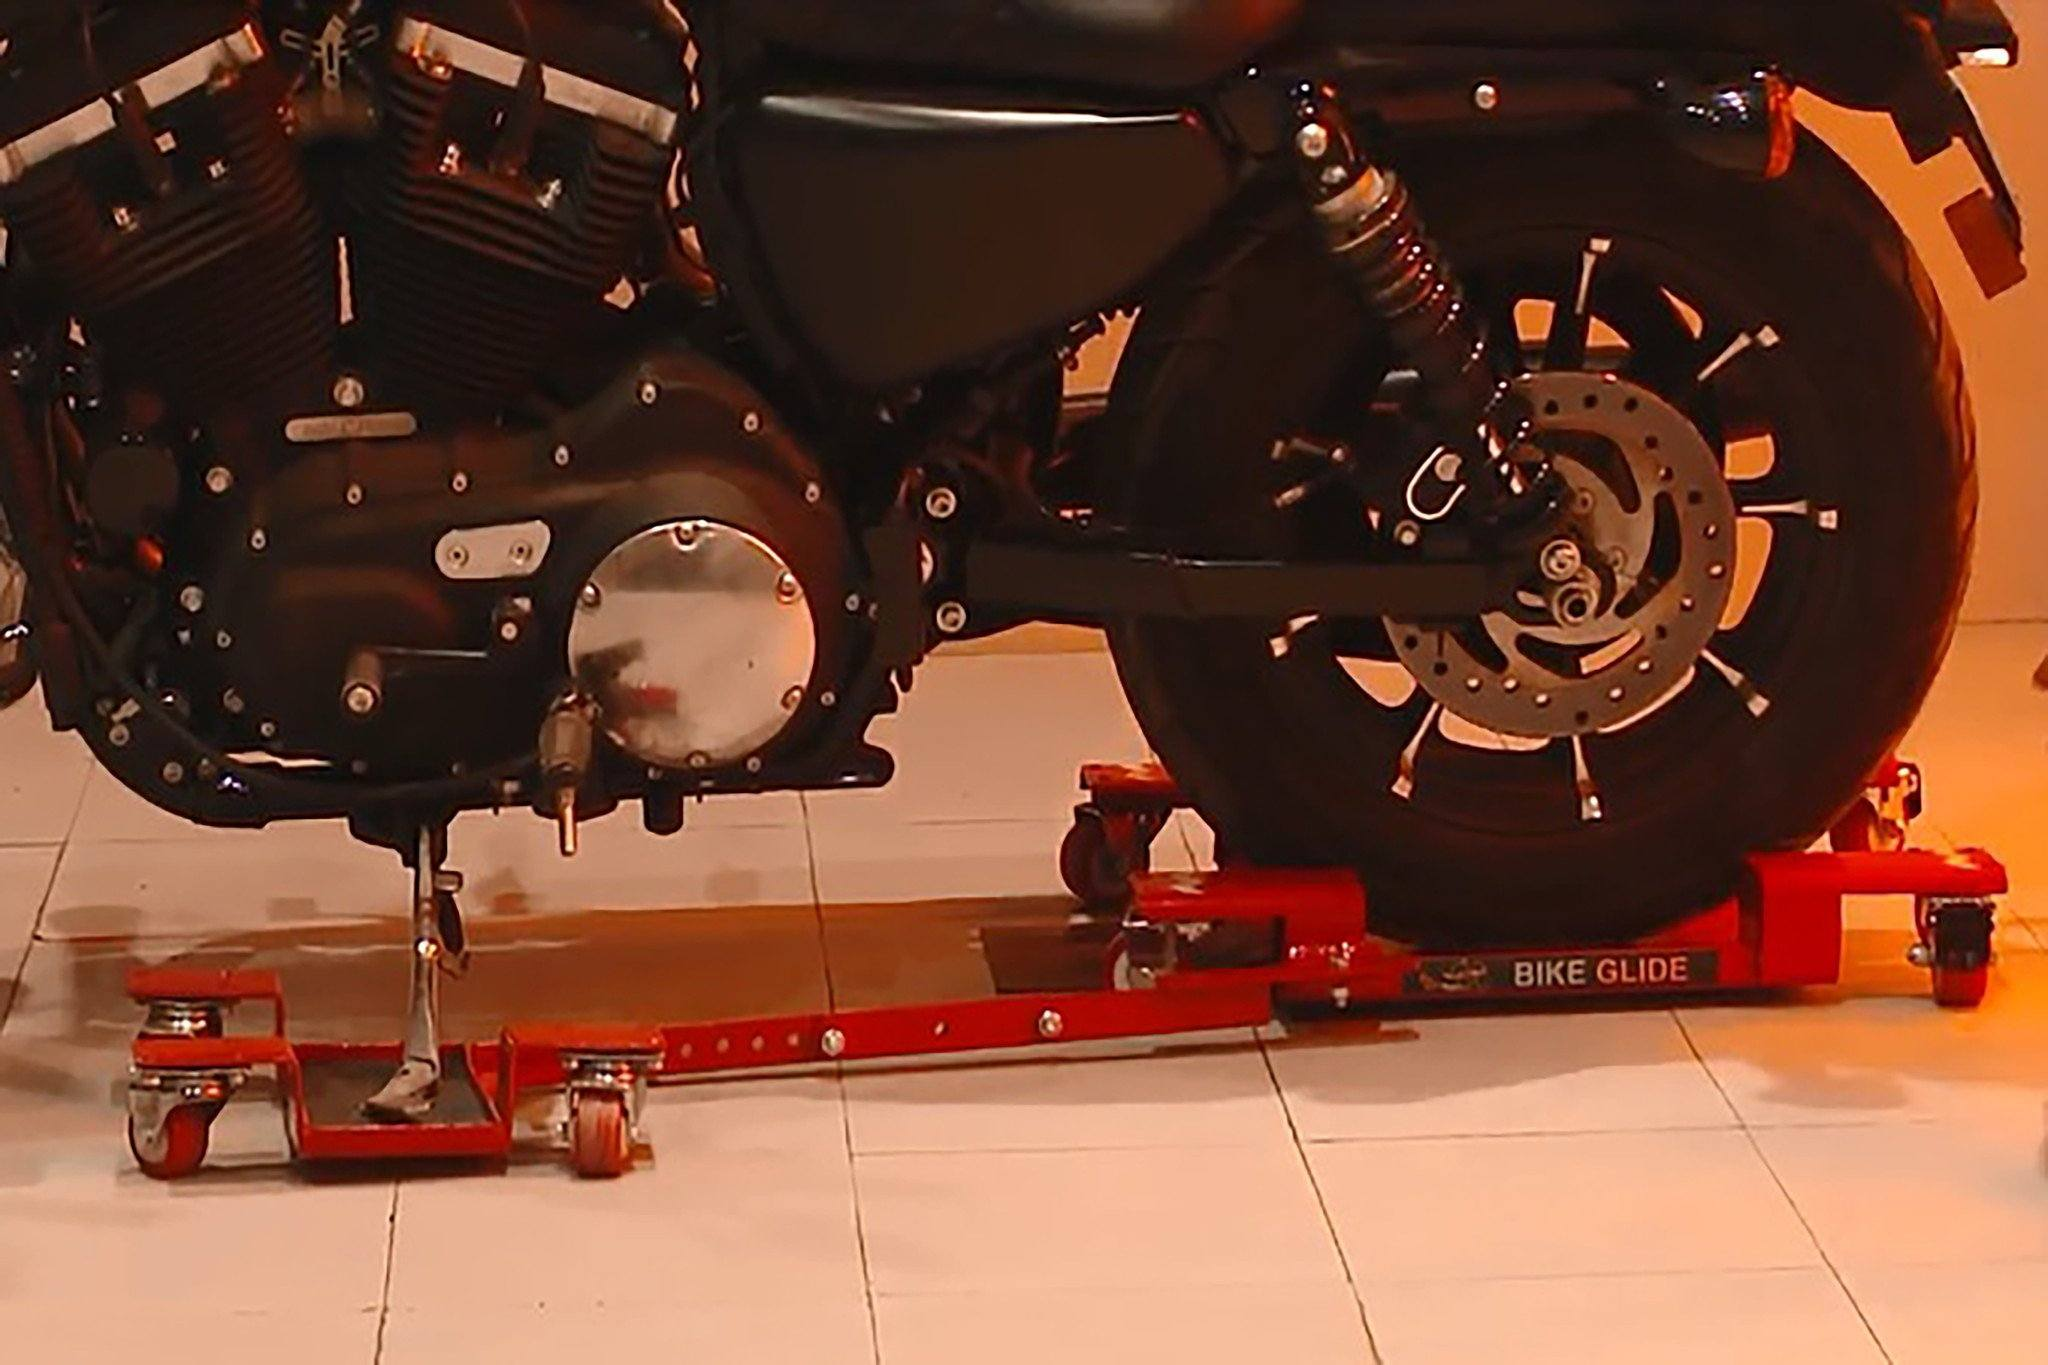 Motorcycle Parking Stand for easy parking